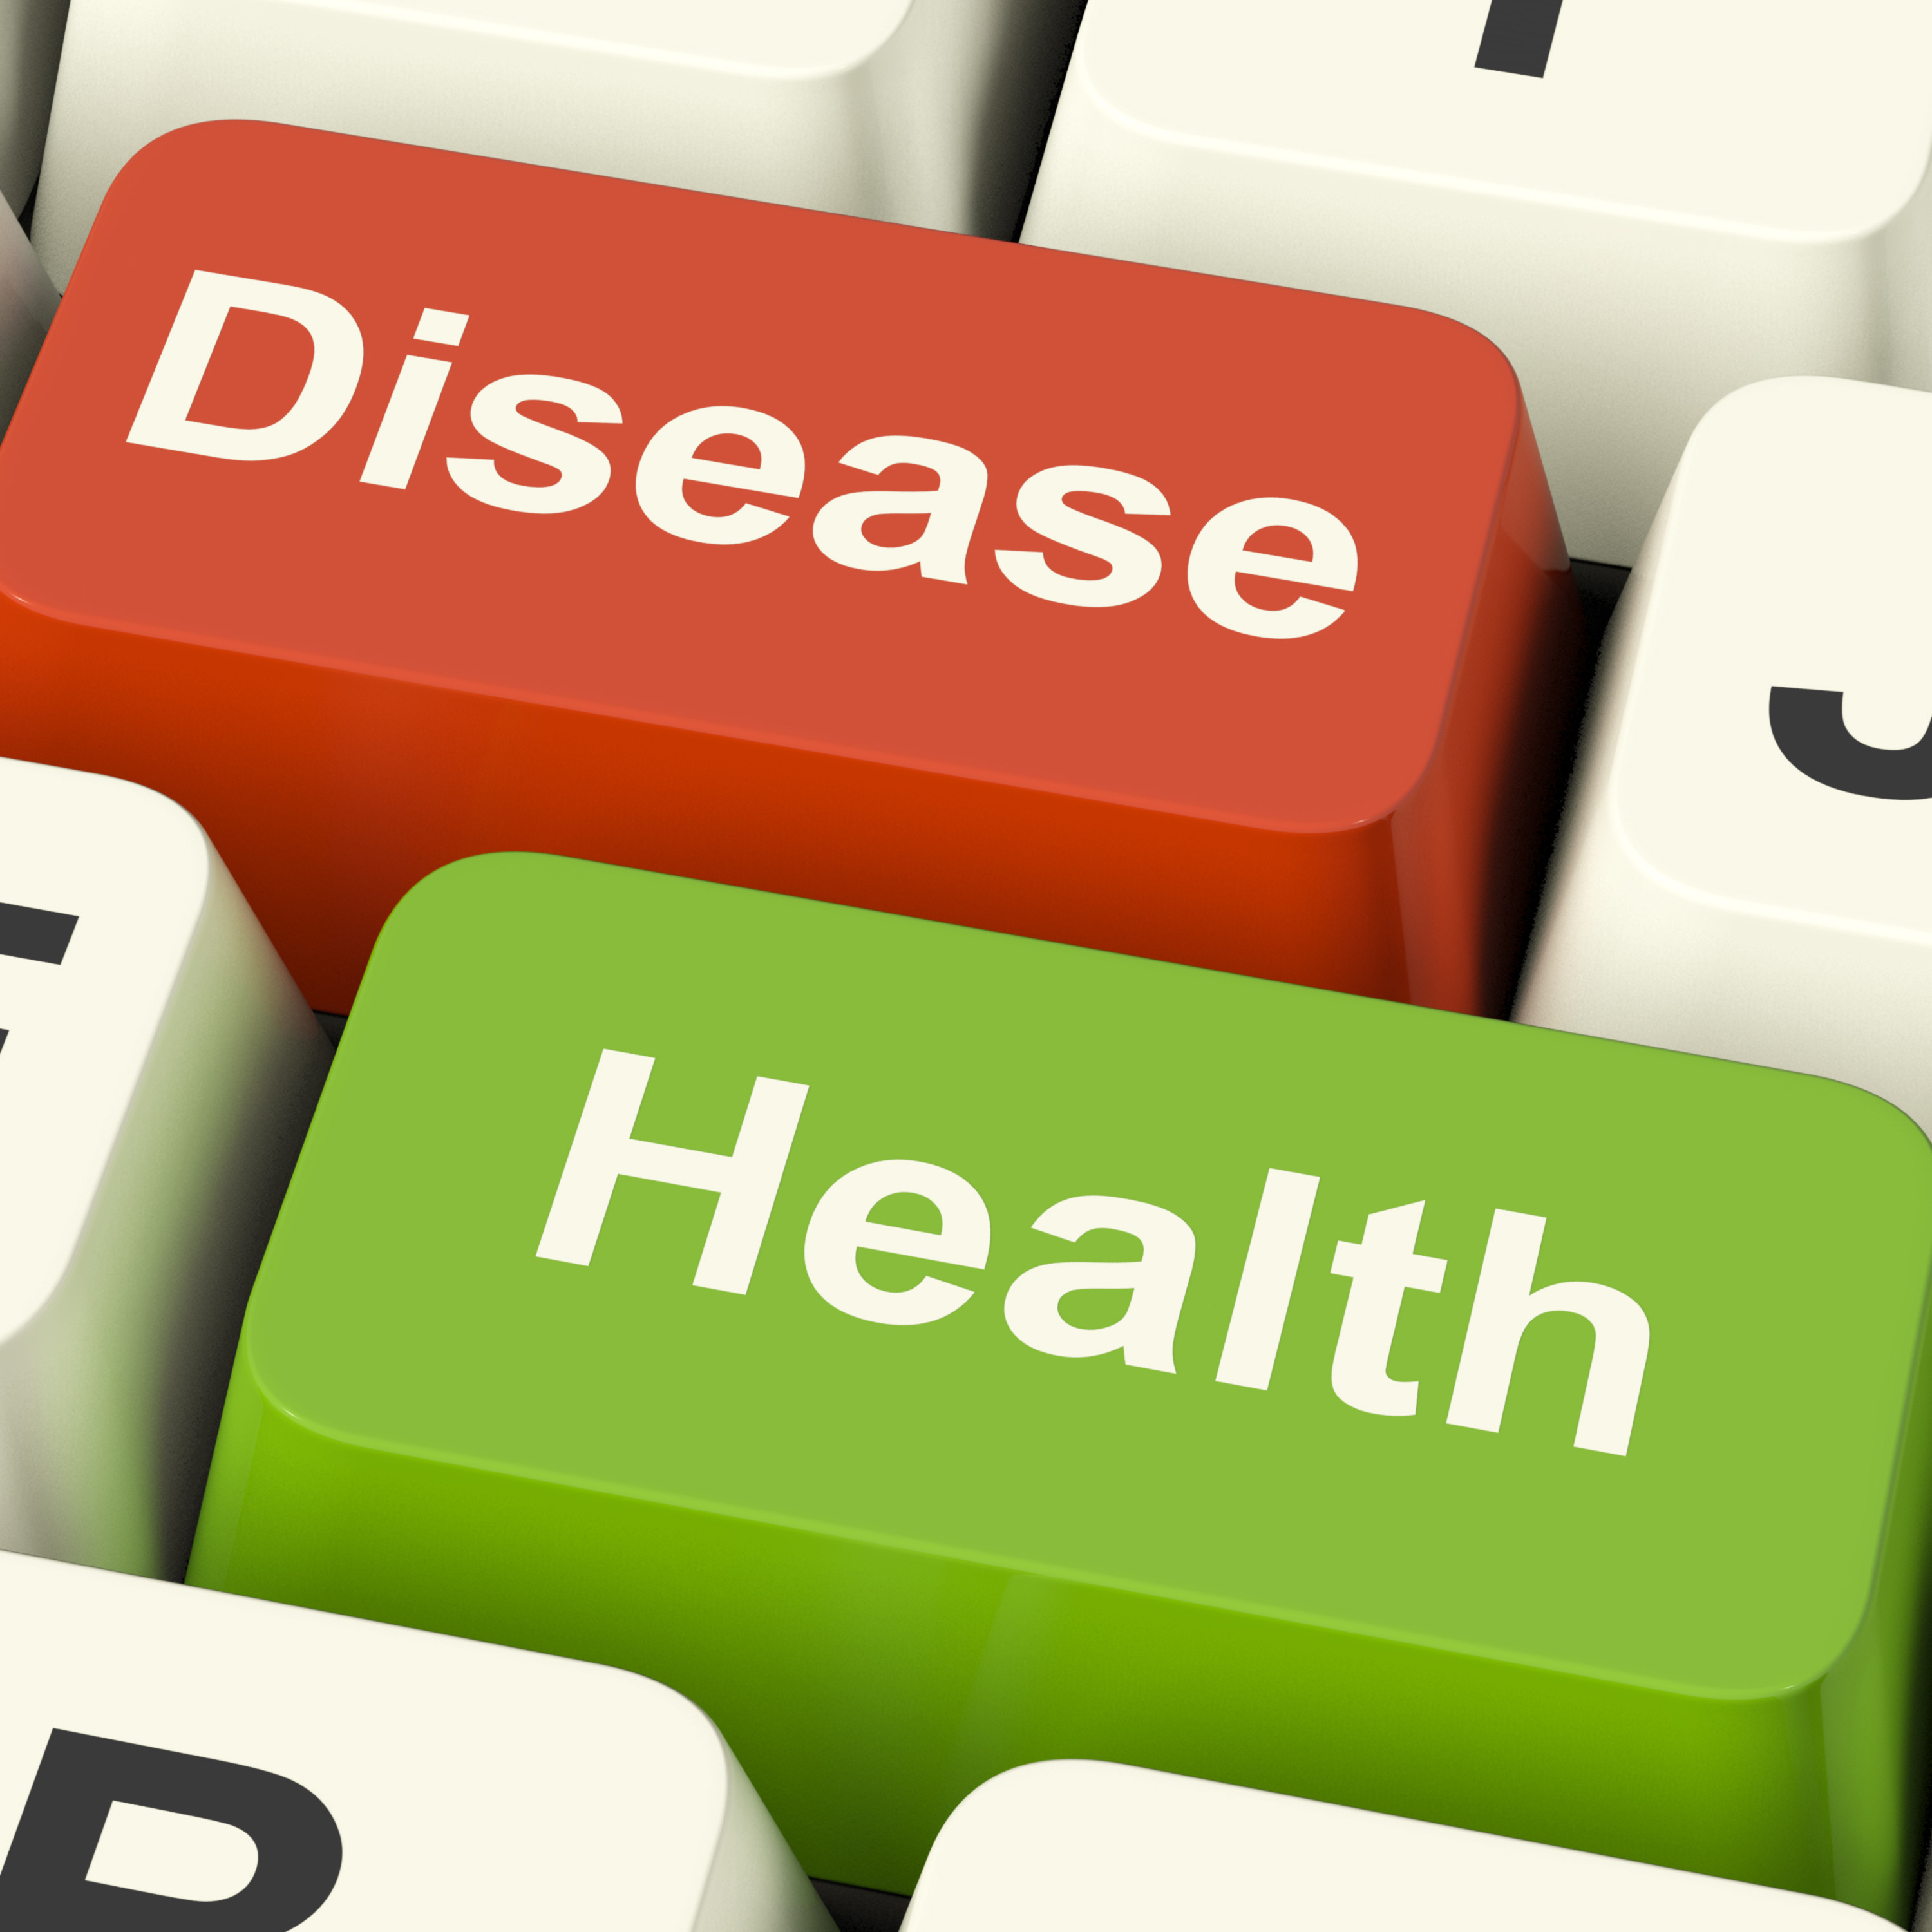 Disease And Health Computer Keys Showing Online Healthcare Or Treatment